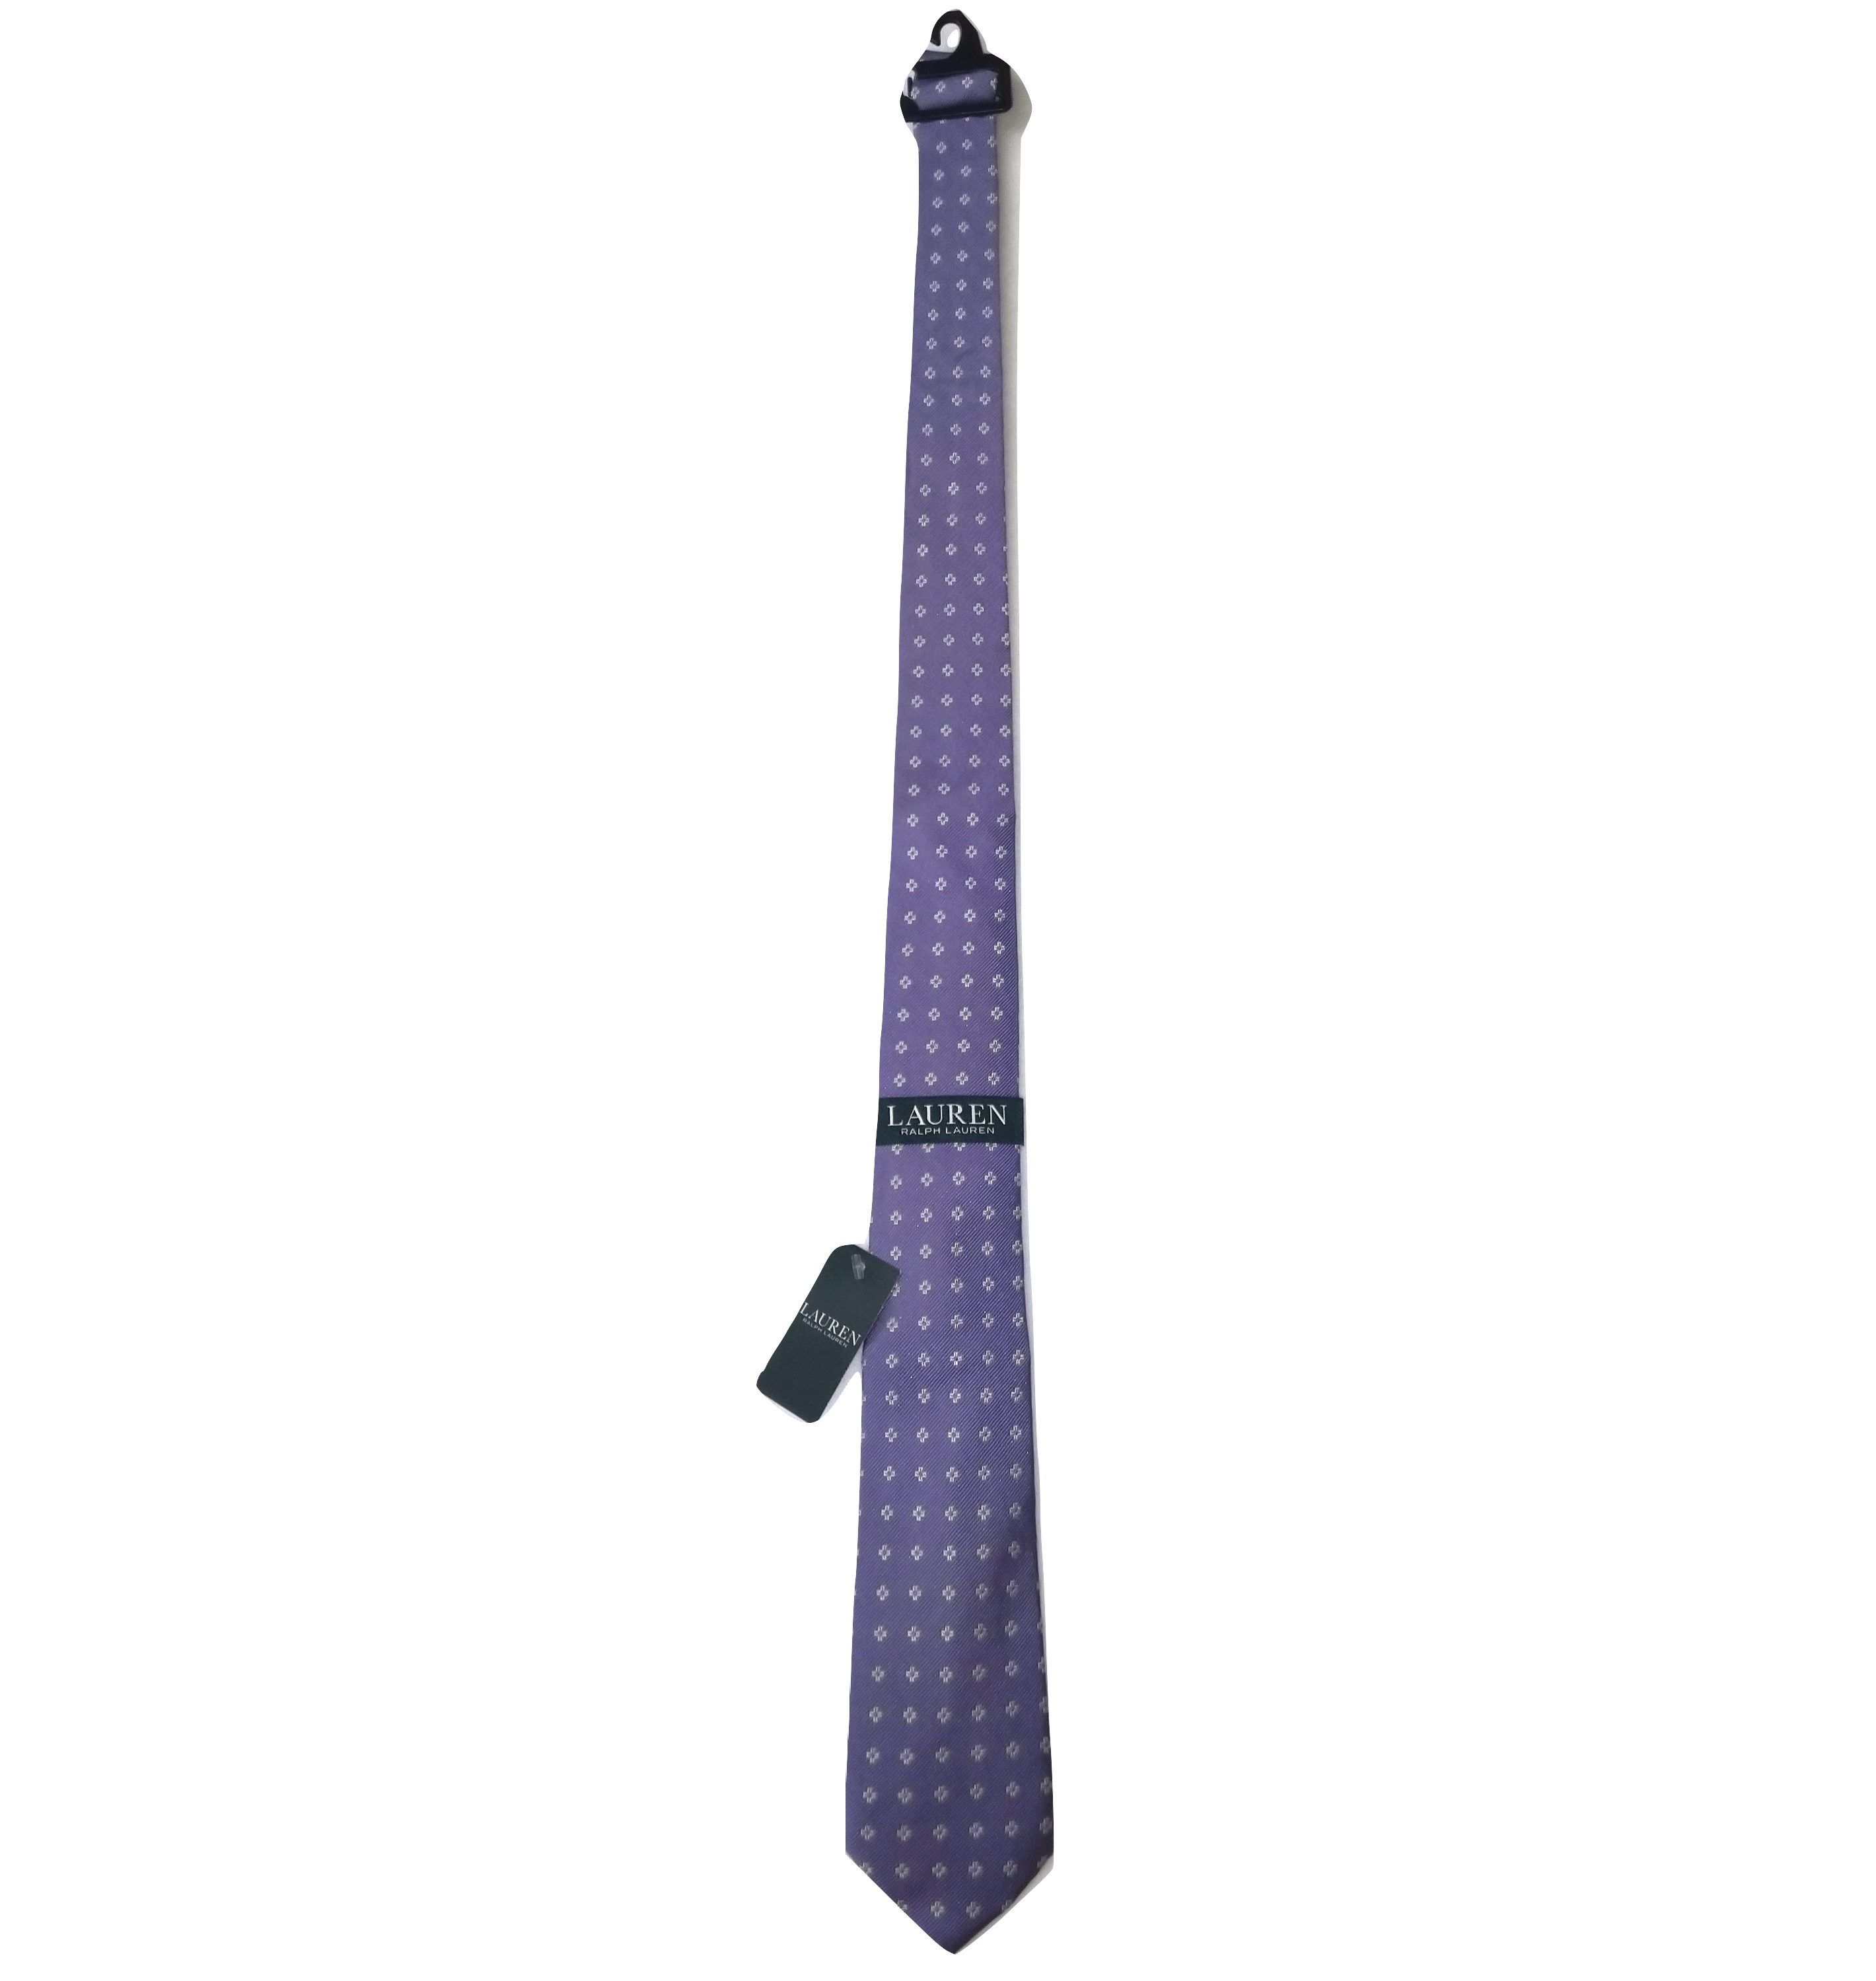 Ralph Lauren Spring Purple Label Necktie, Full